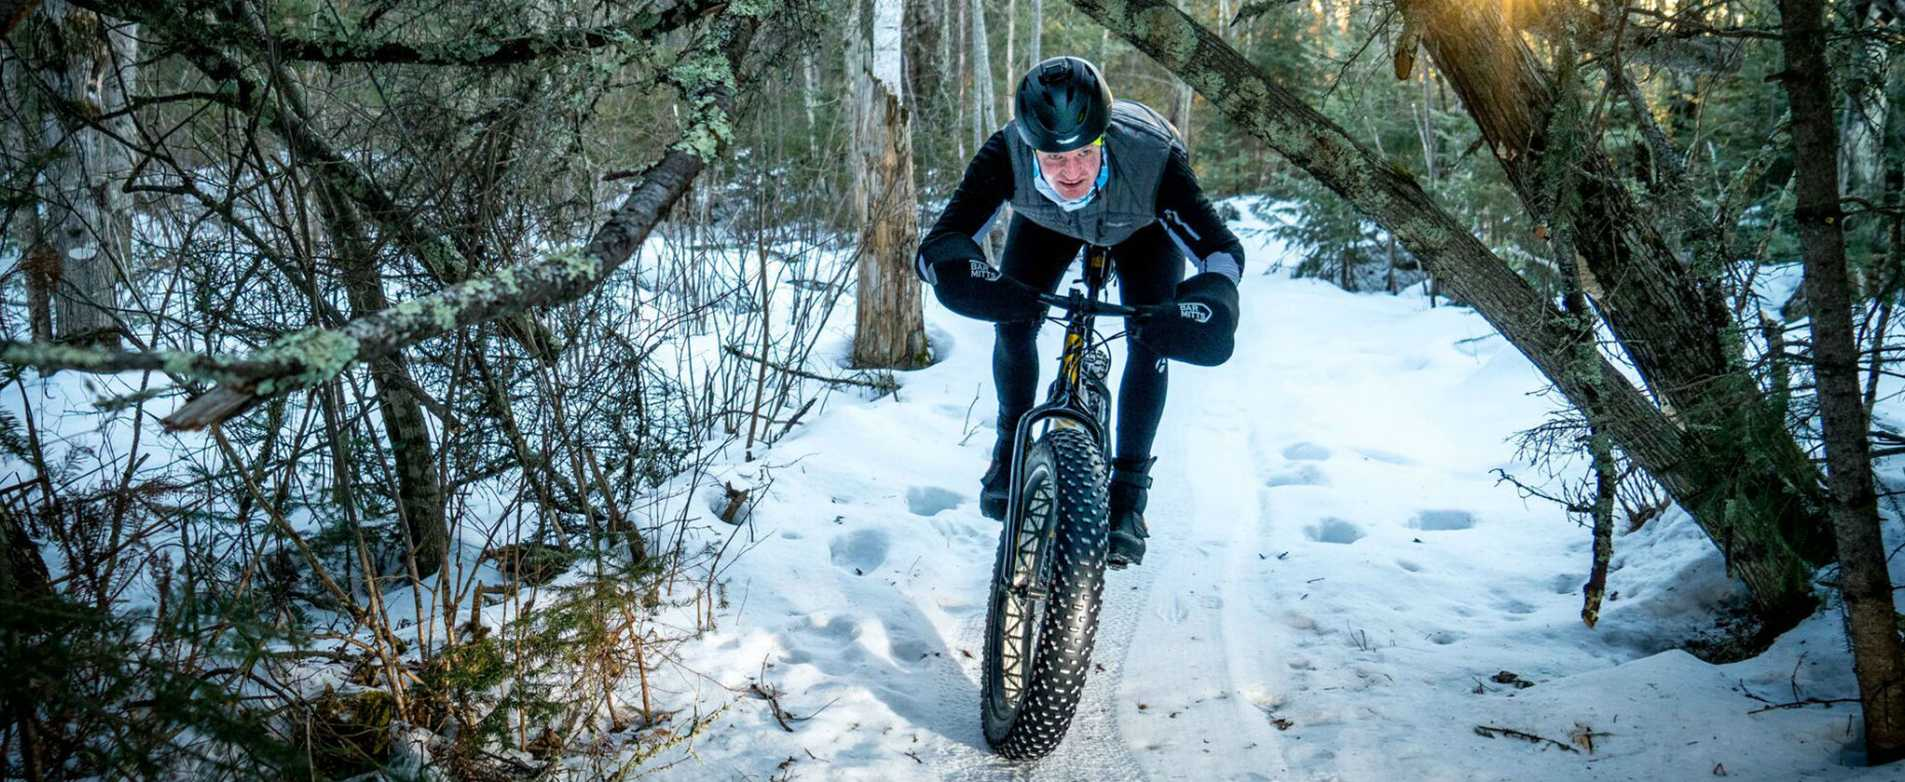 CAMBA Fat Bike Trails in Seely